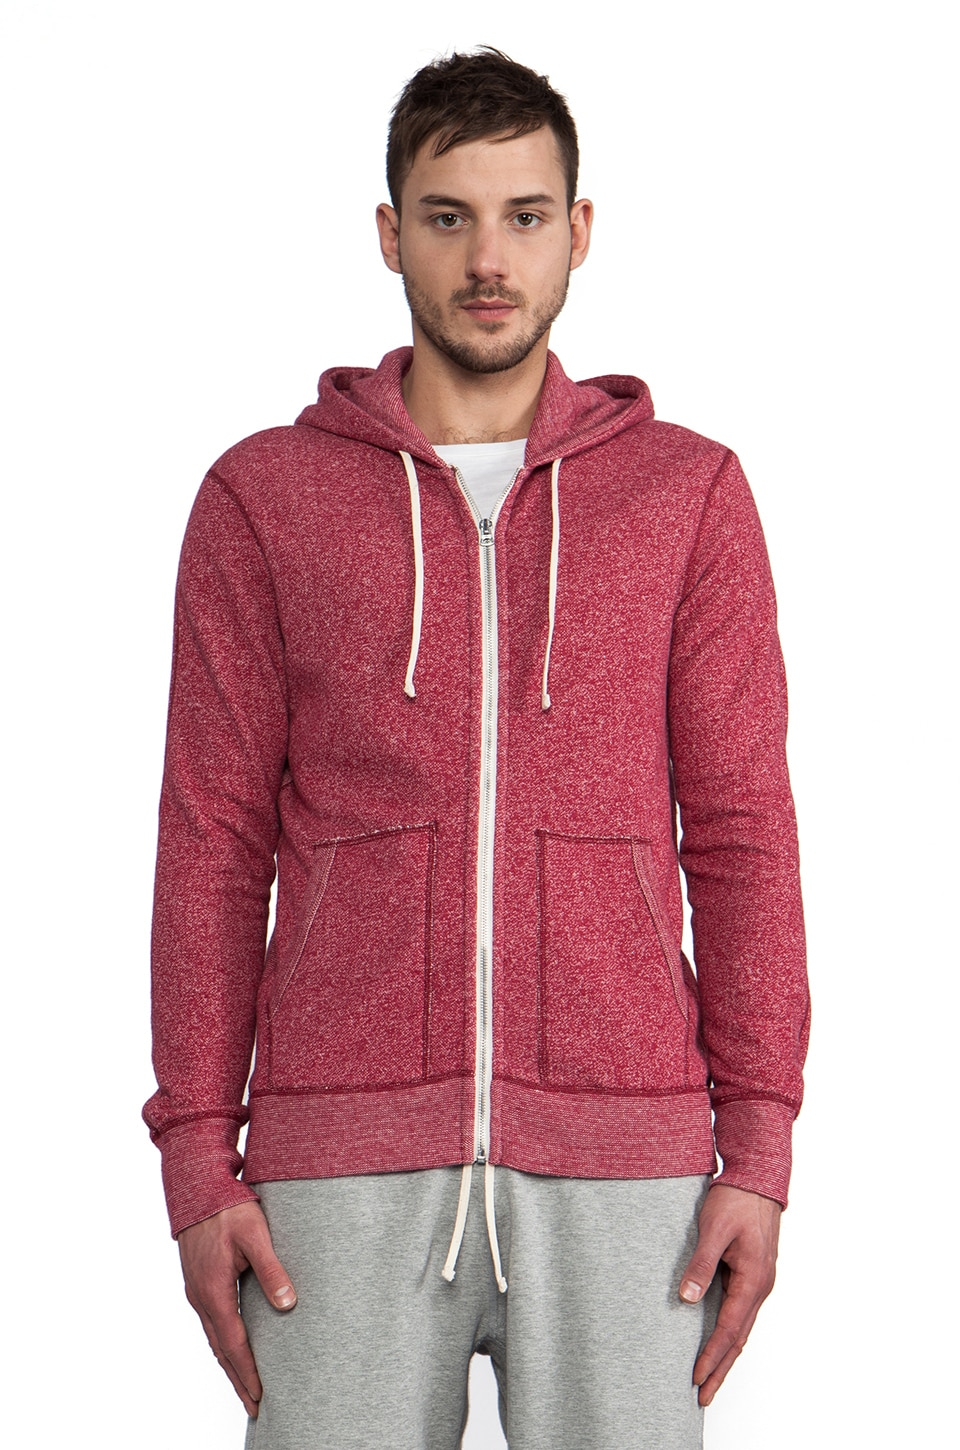 Reigning Champ Full-Zip Hoodie in Dark Cherry & Natural